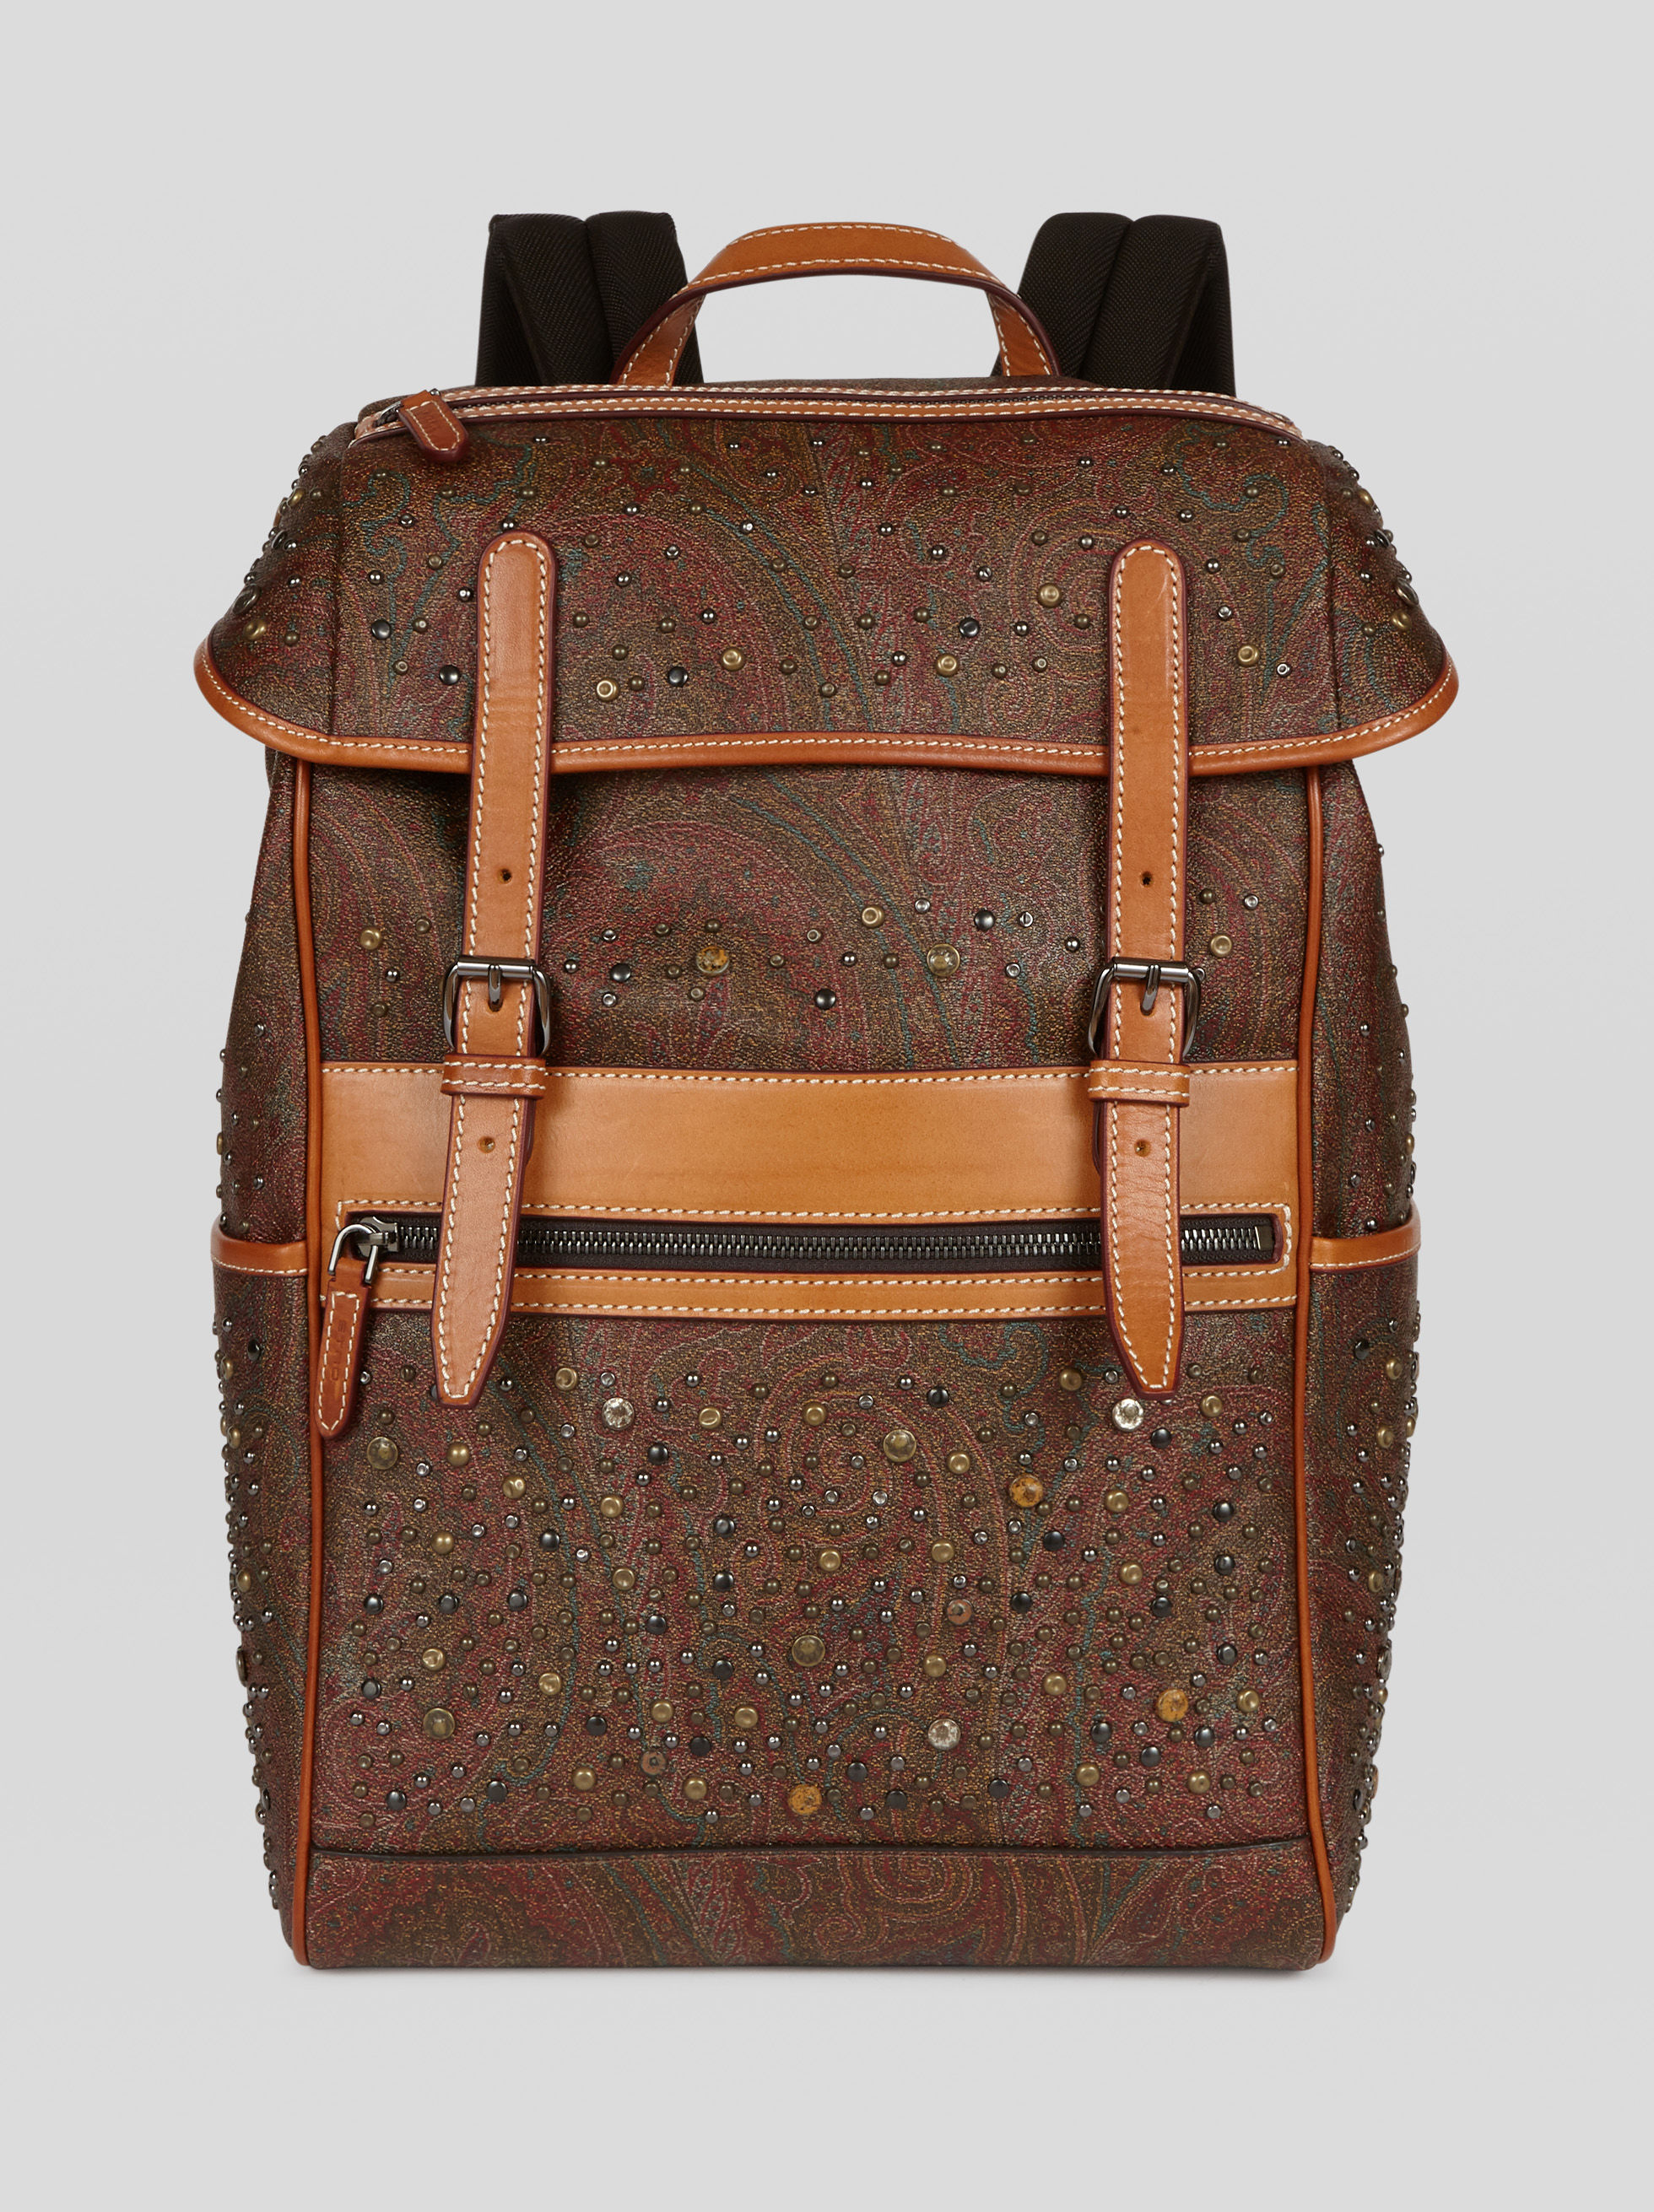 PAISLEY FABRIC BACKPACK WITH STUDS